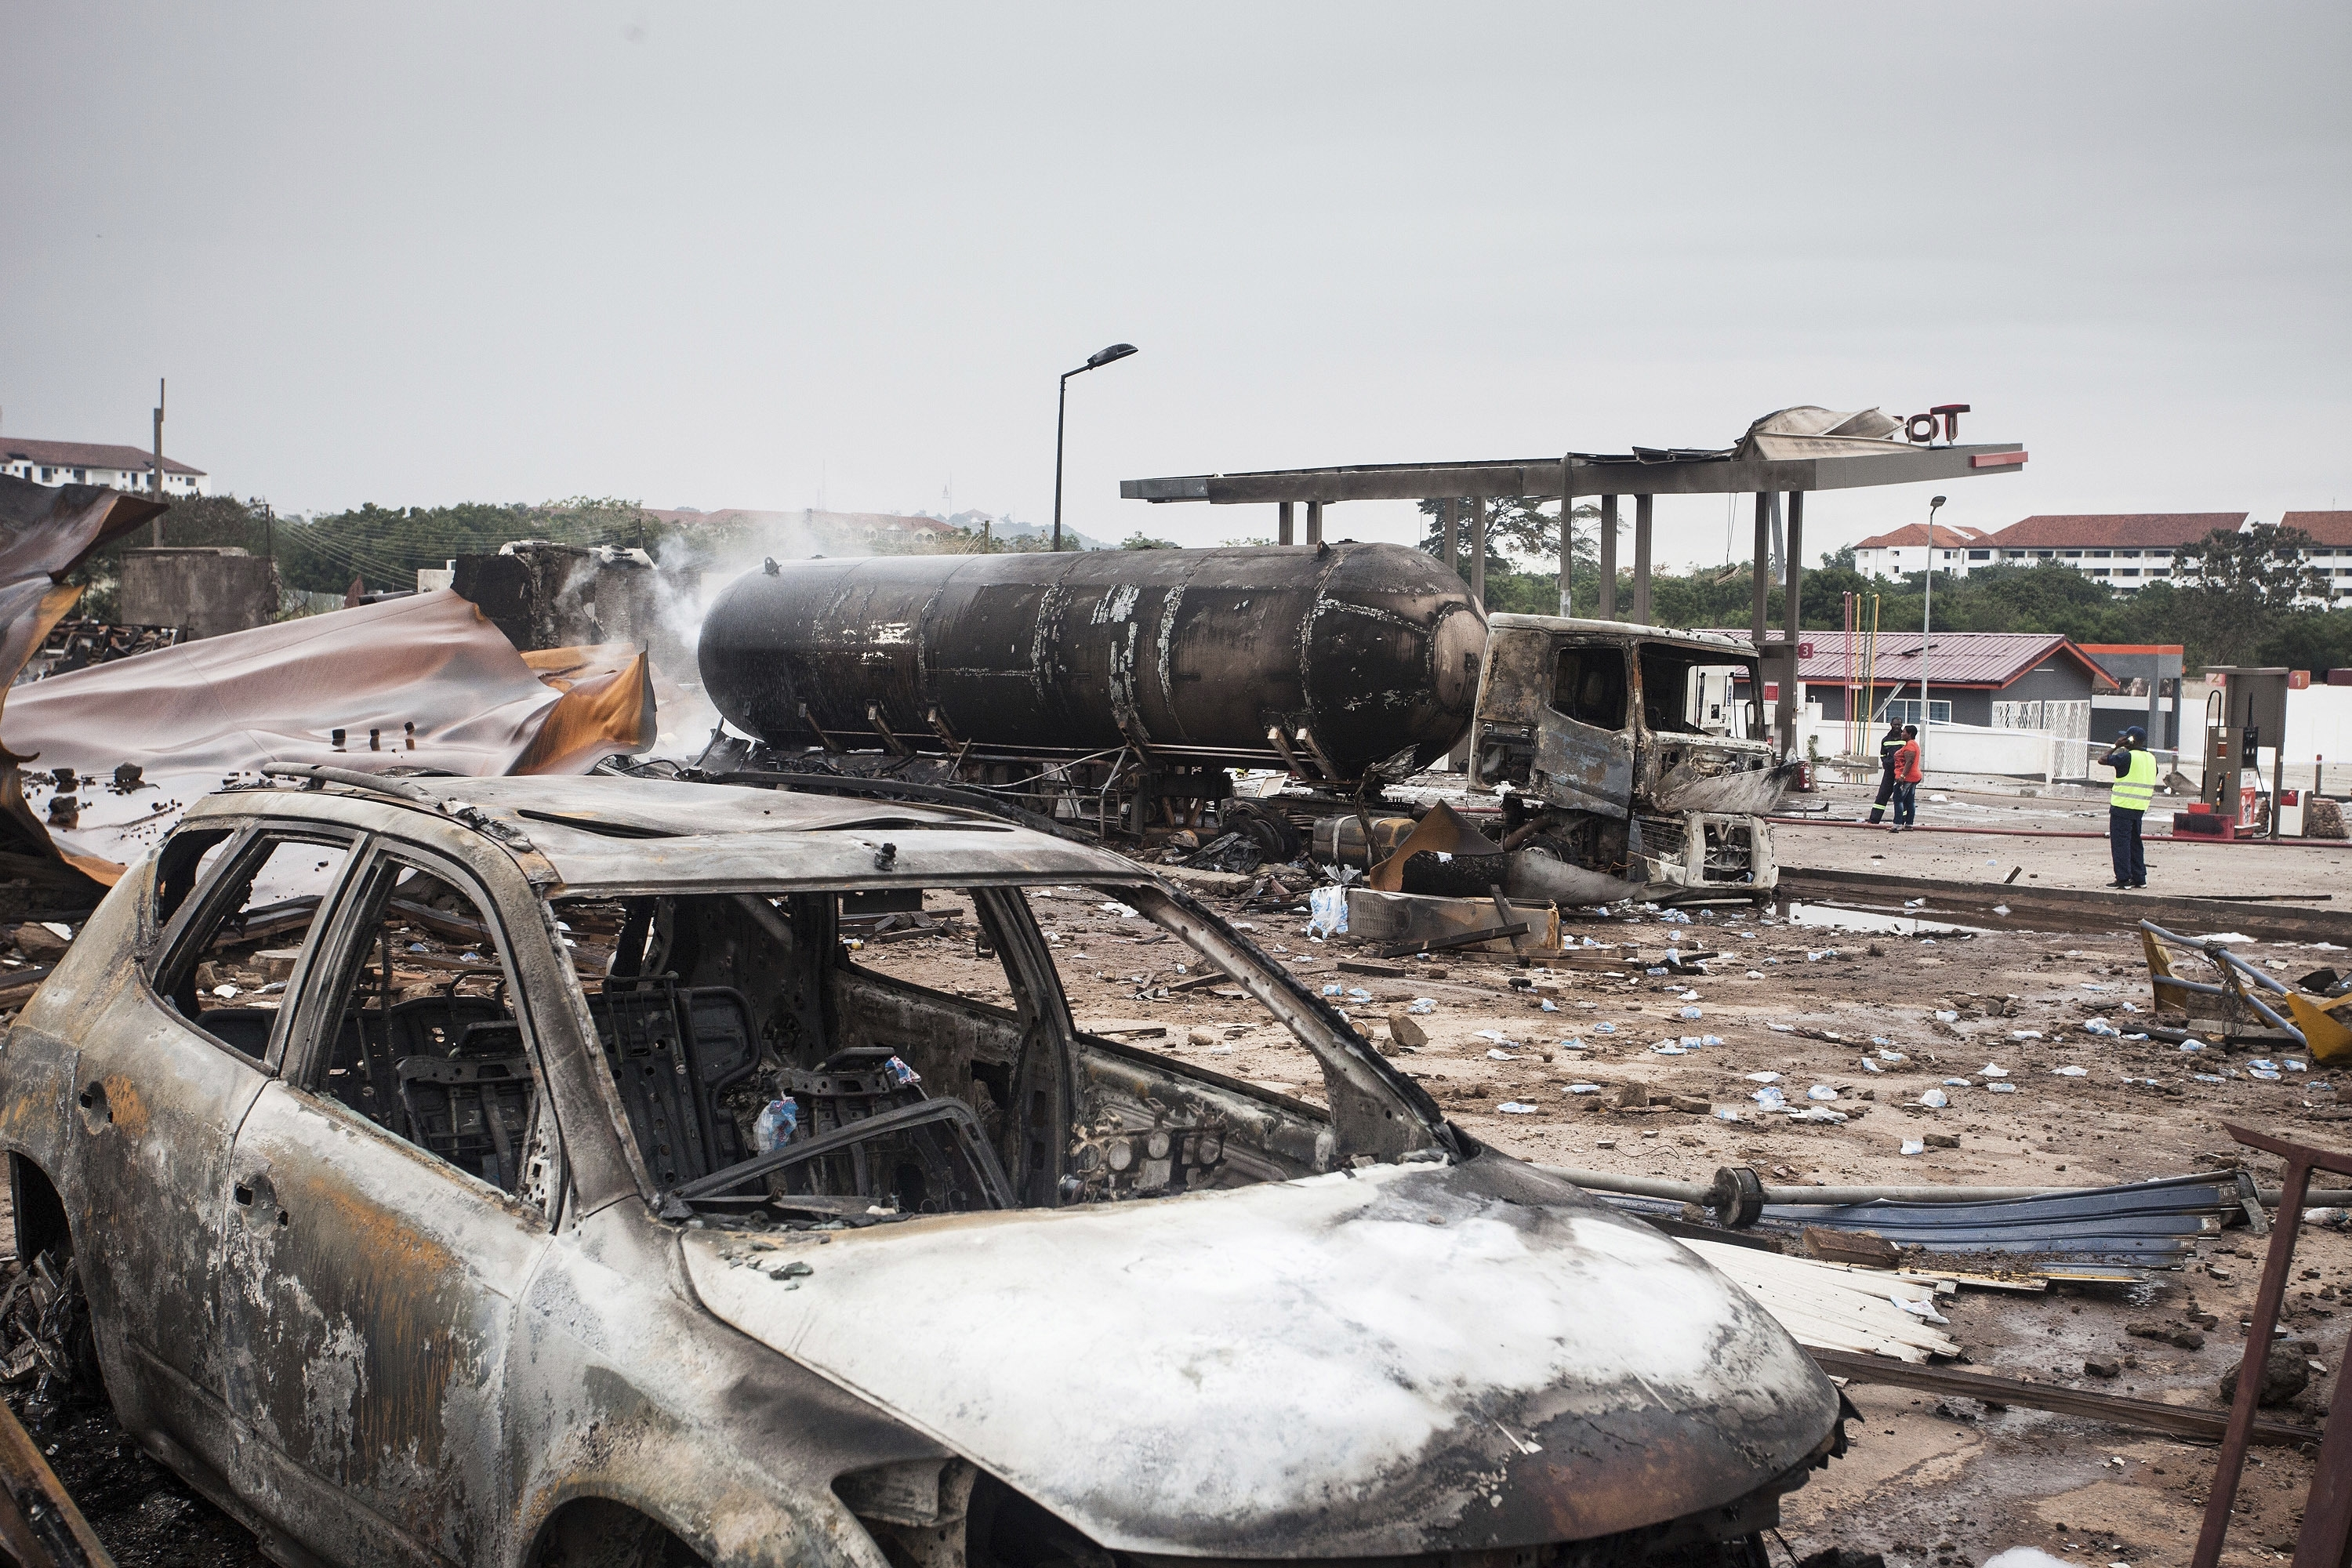 Firemen at the site of Saturday's gas tanker explosion in Accra, Ghana. Sunday Oct. 8, 2017.